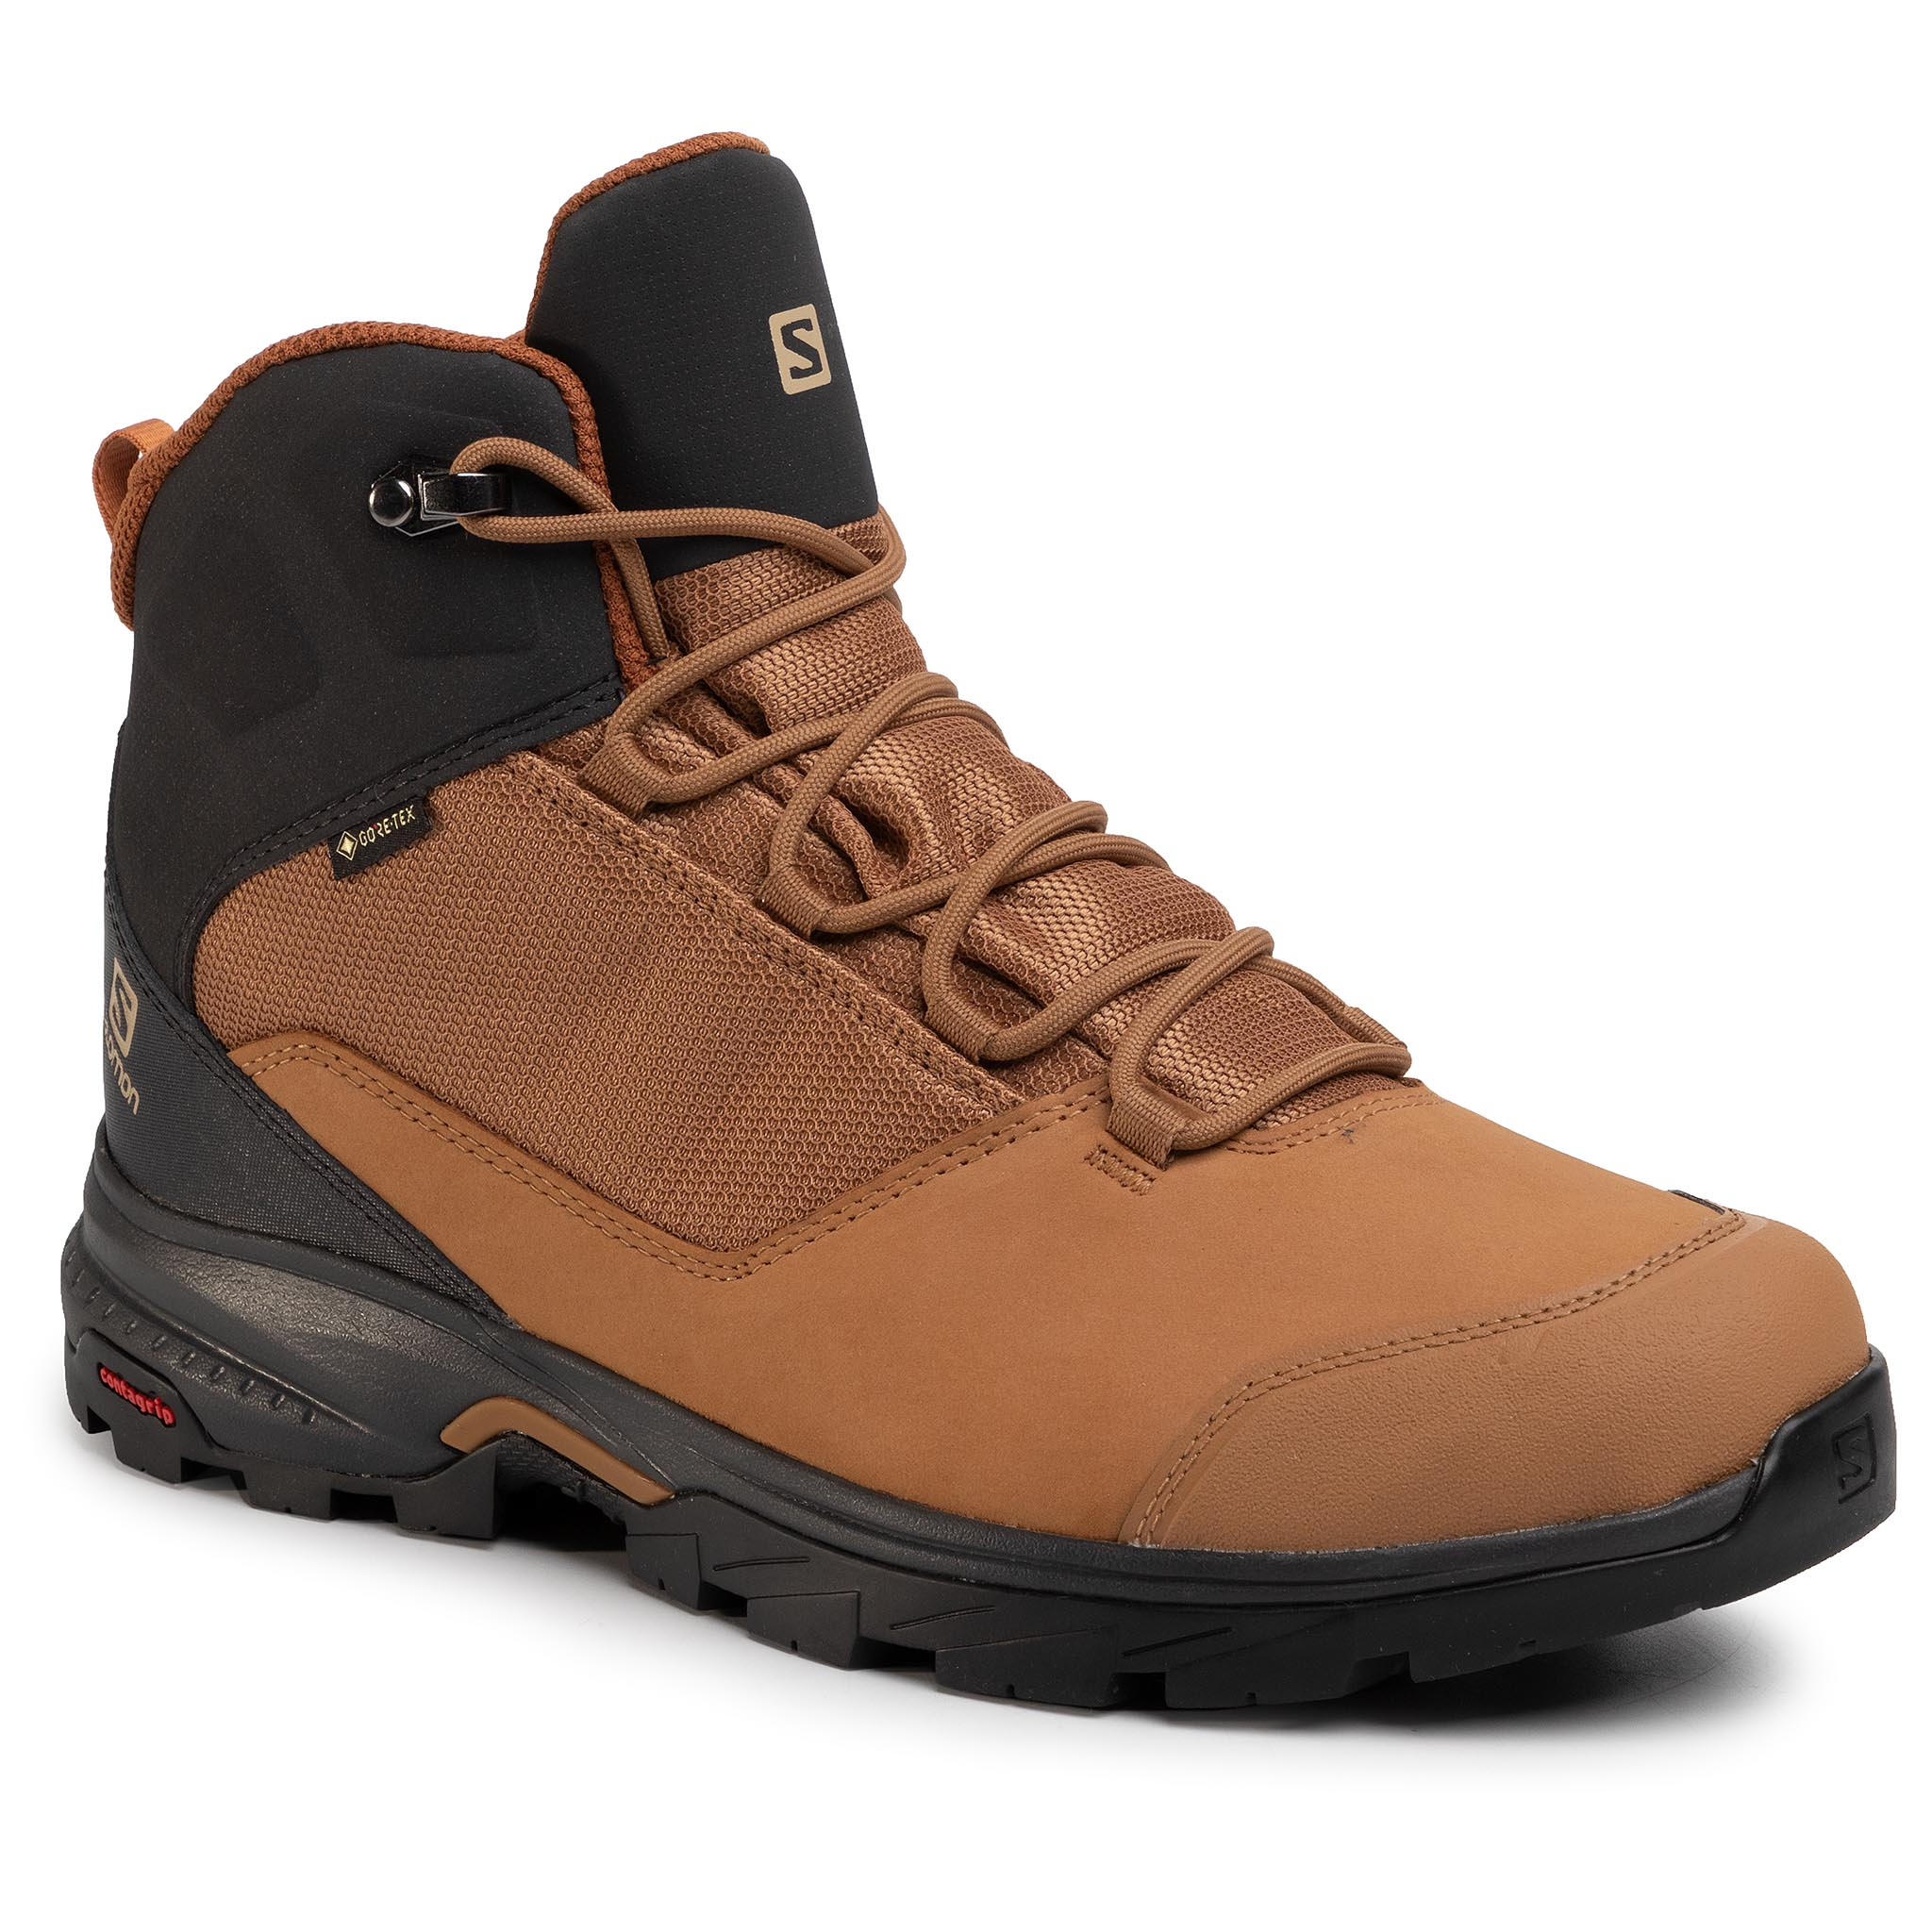 Trekkings Salomon - Outward Gtx Gore-Tex 410423 31 V0 Tabacco Brown/Phantom/Carmel Cafe imagine epantofi.ro 2021